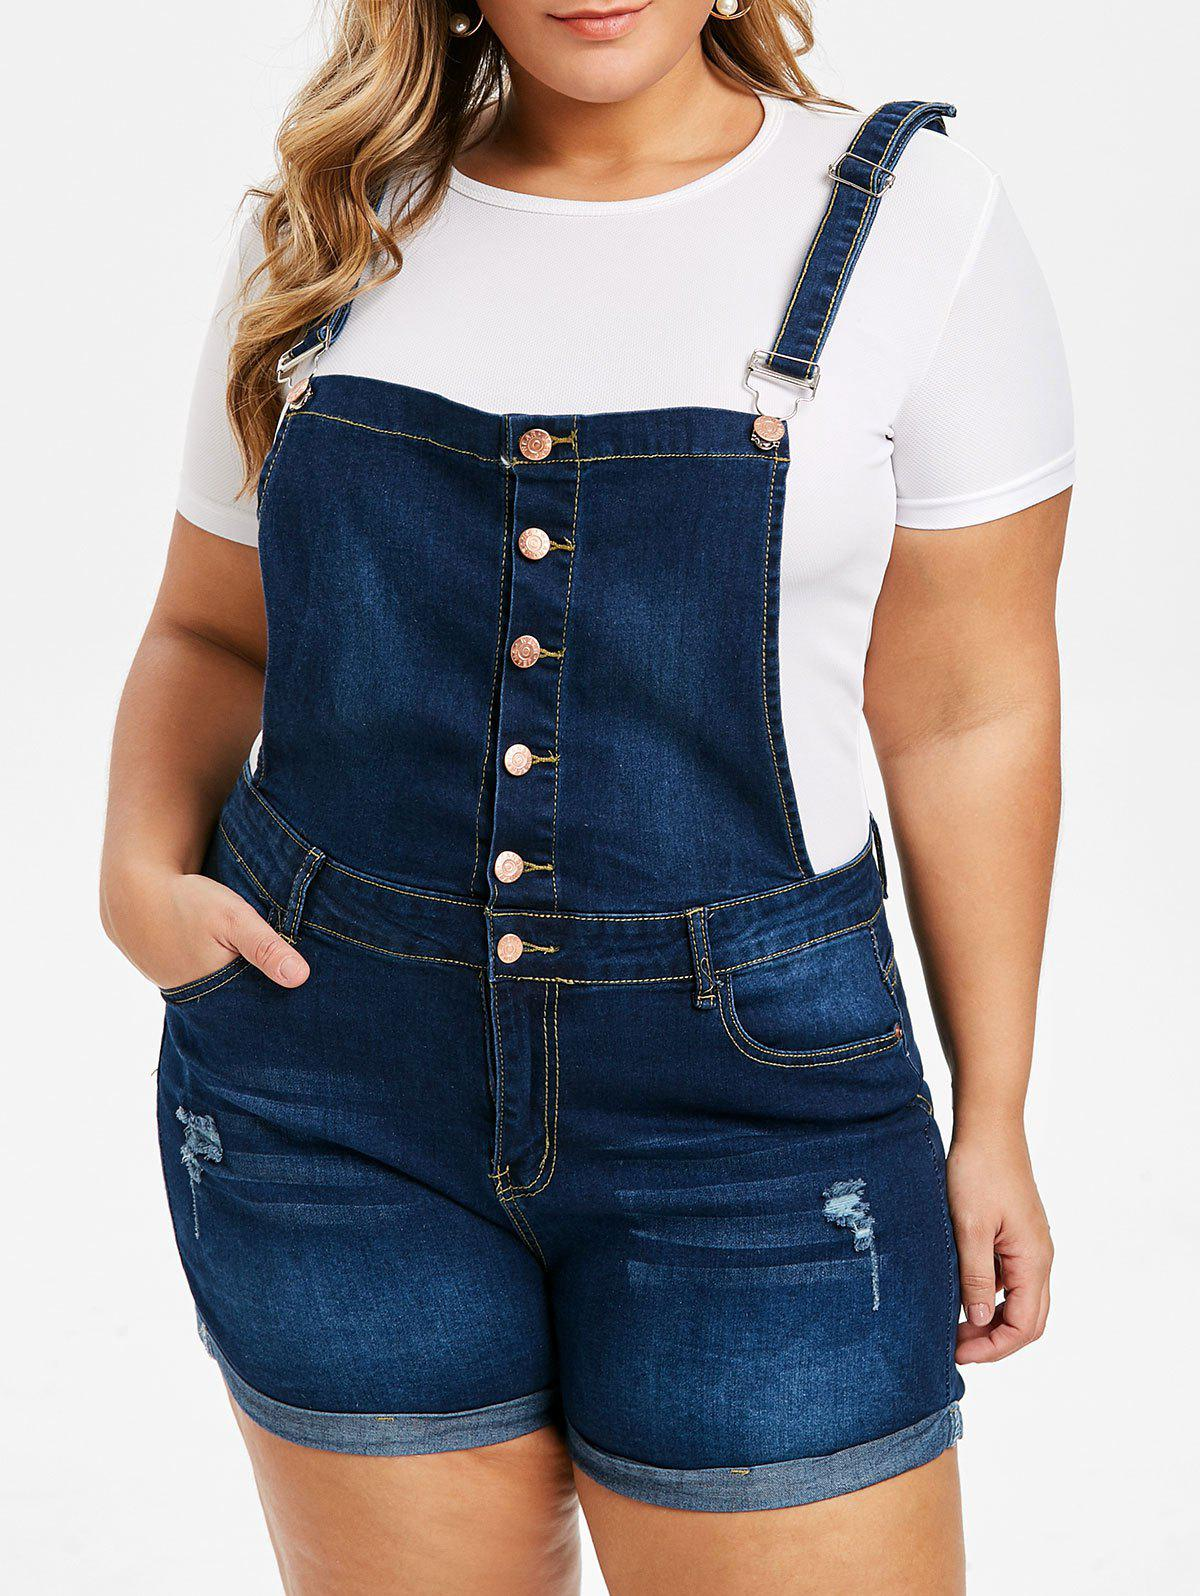 Button Fly Cuffed Distressed Plus Size Denim Overall Shorts - DENIM BLUE L